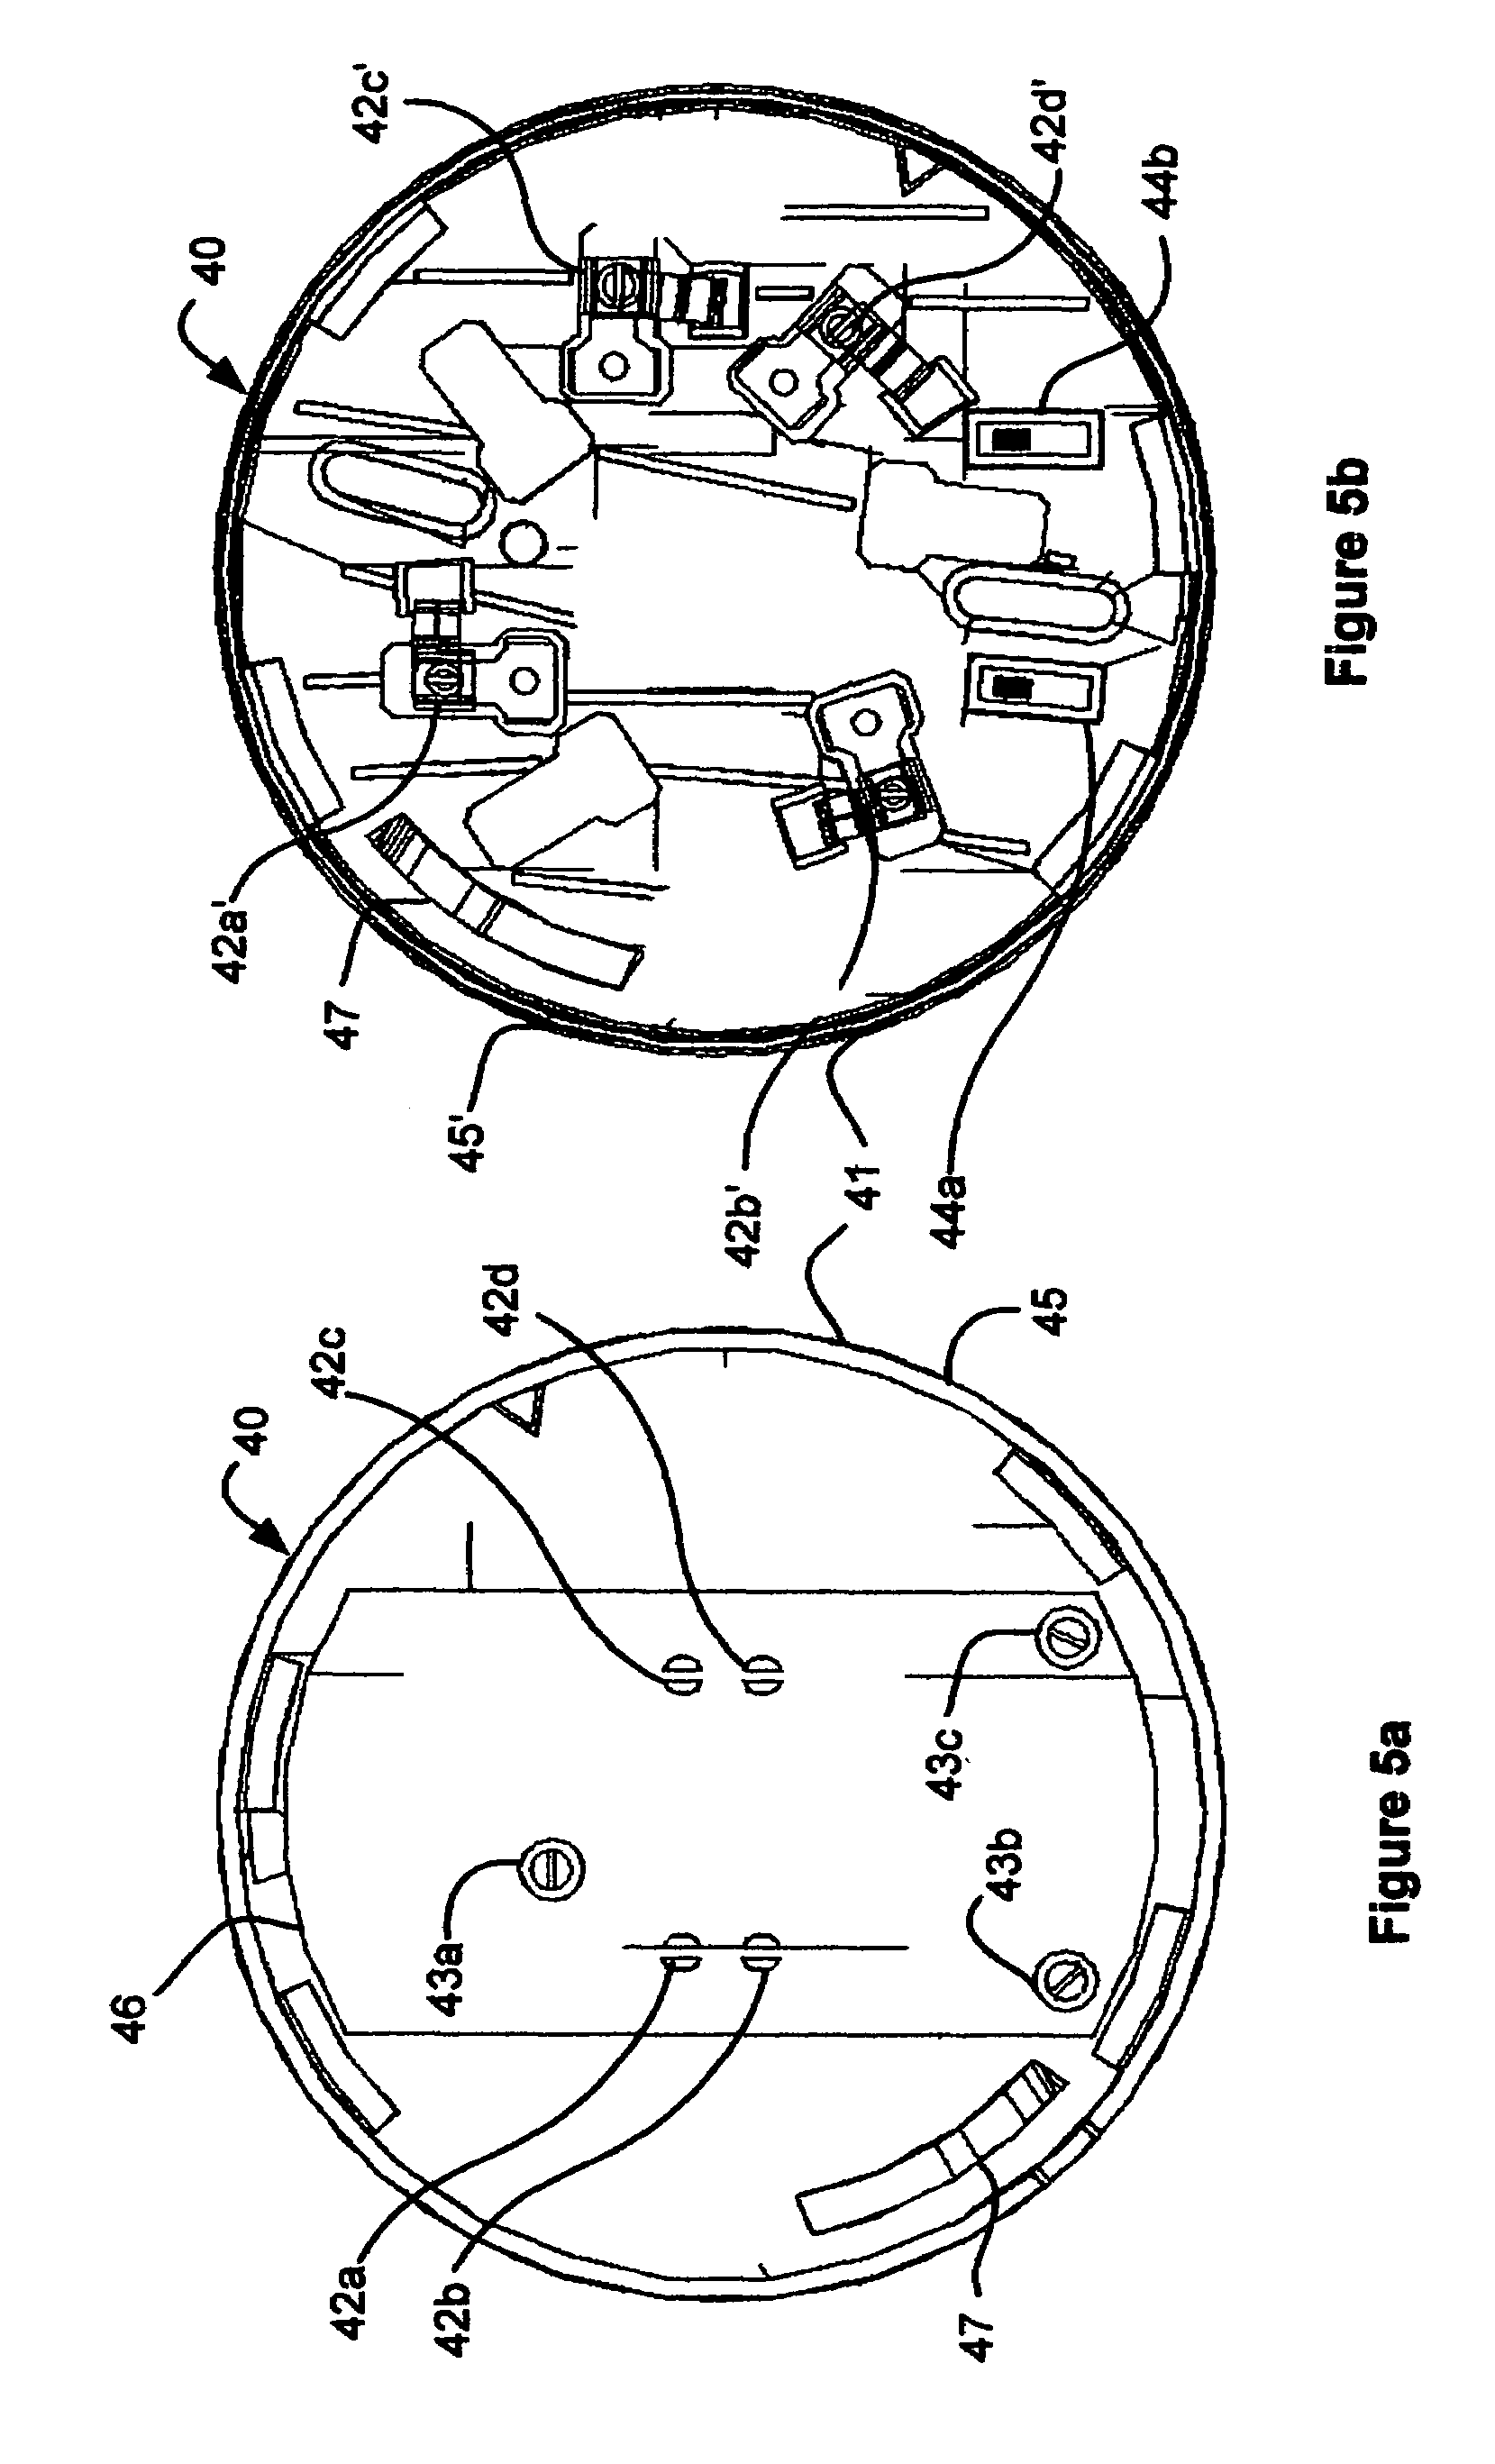 US07336165 20080226 D00005 patent us7336165 retrofitting detectors into legacy detector siga-sb wiring diagram at bayanpartner.co